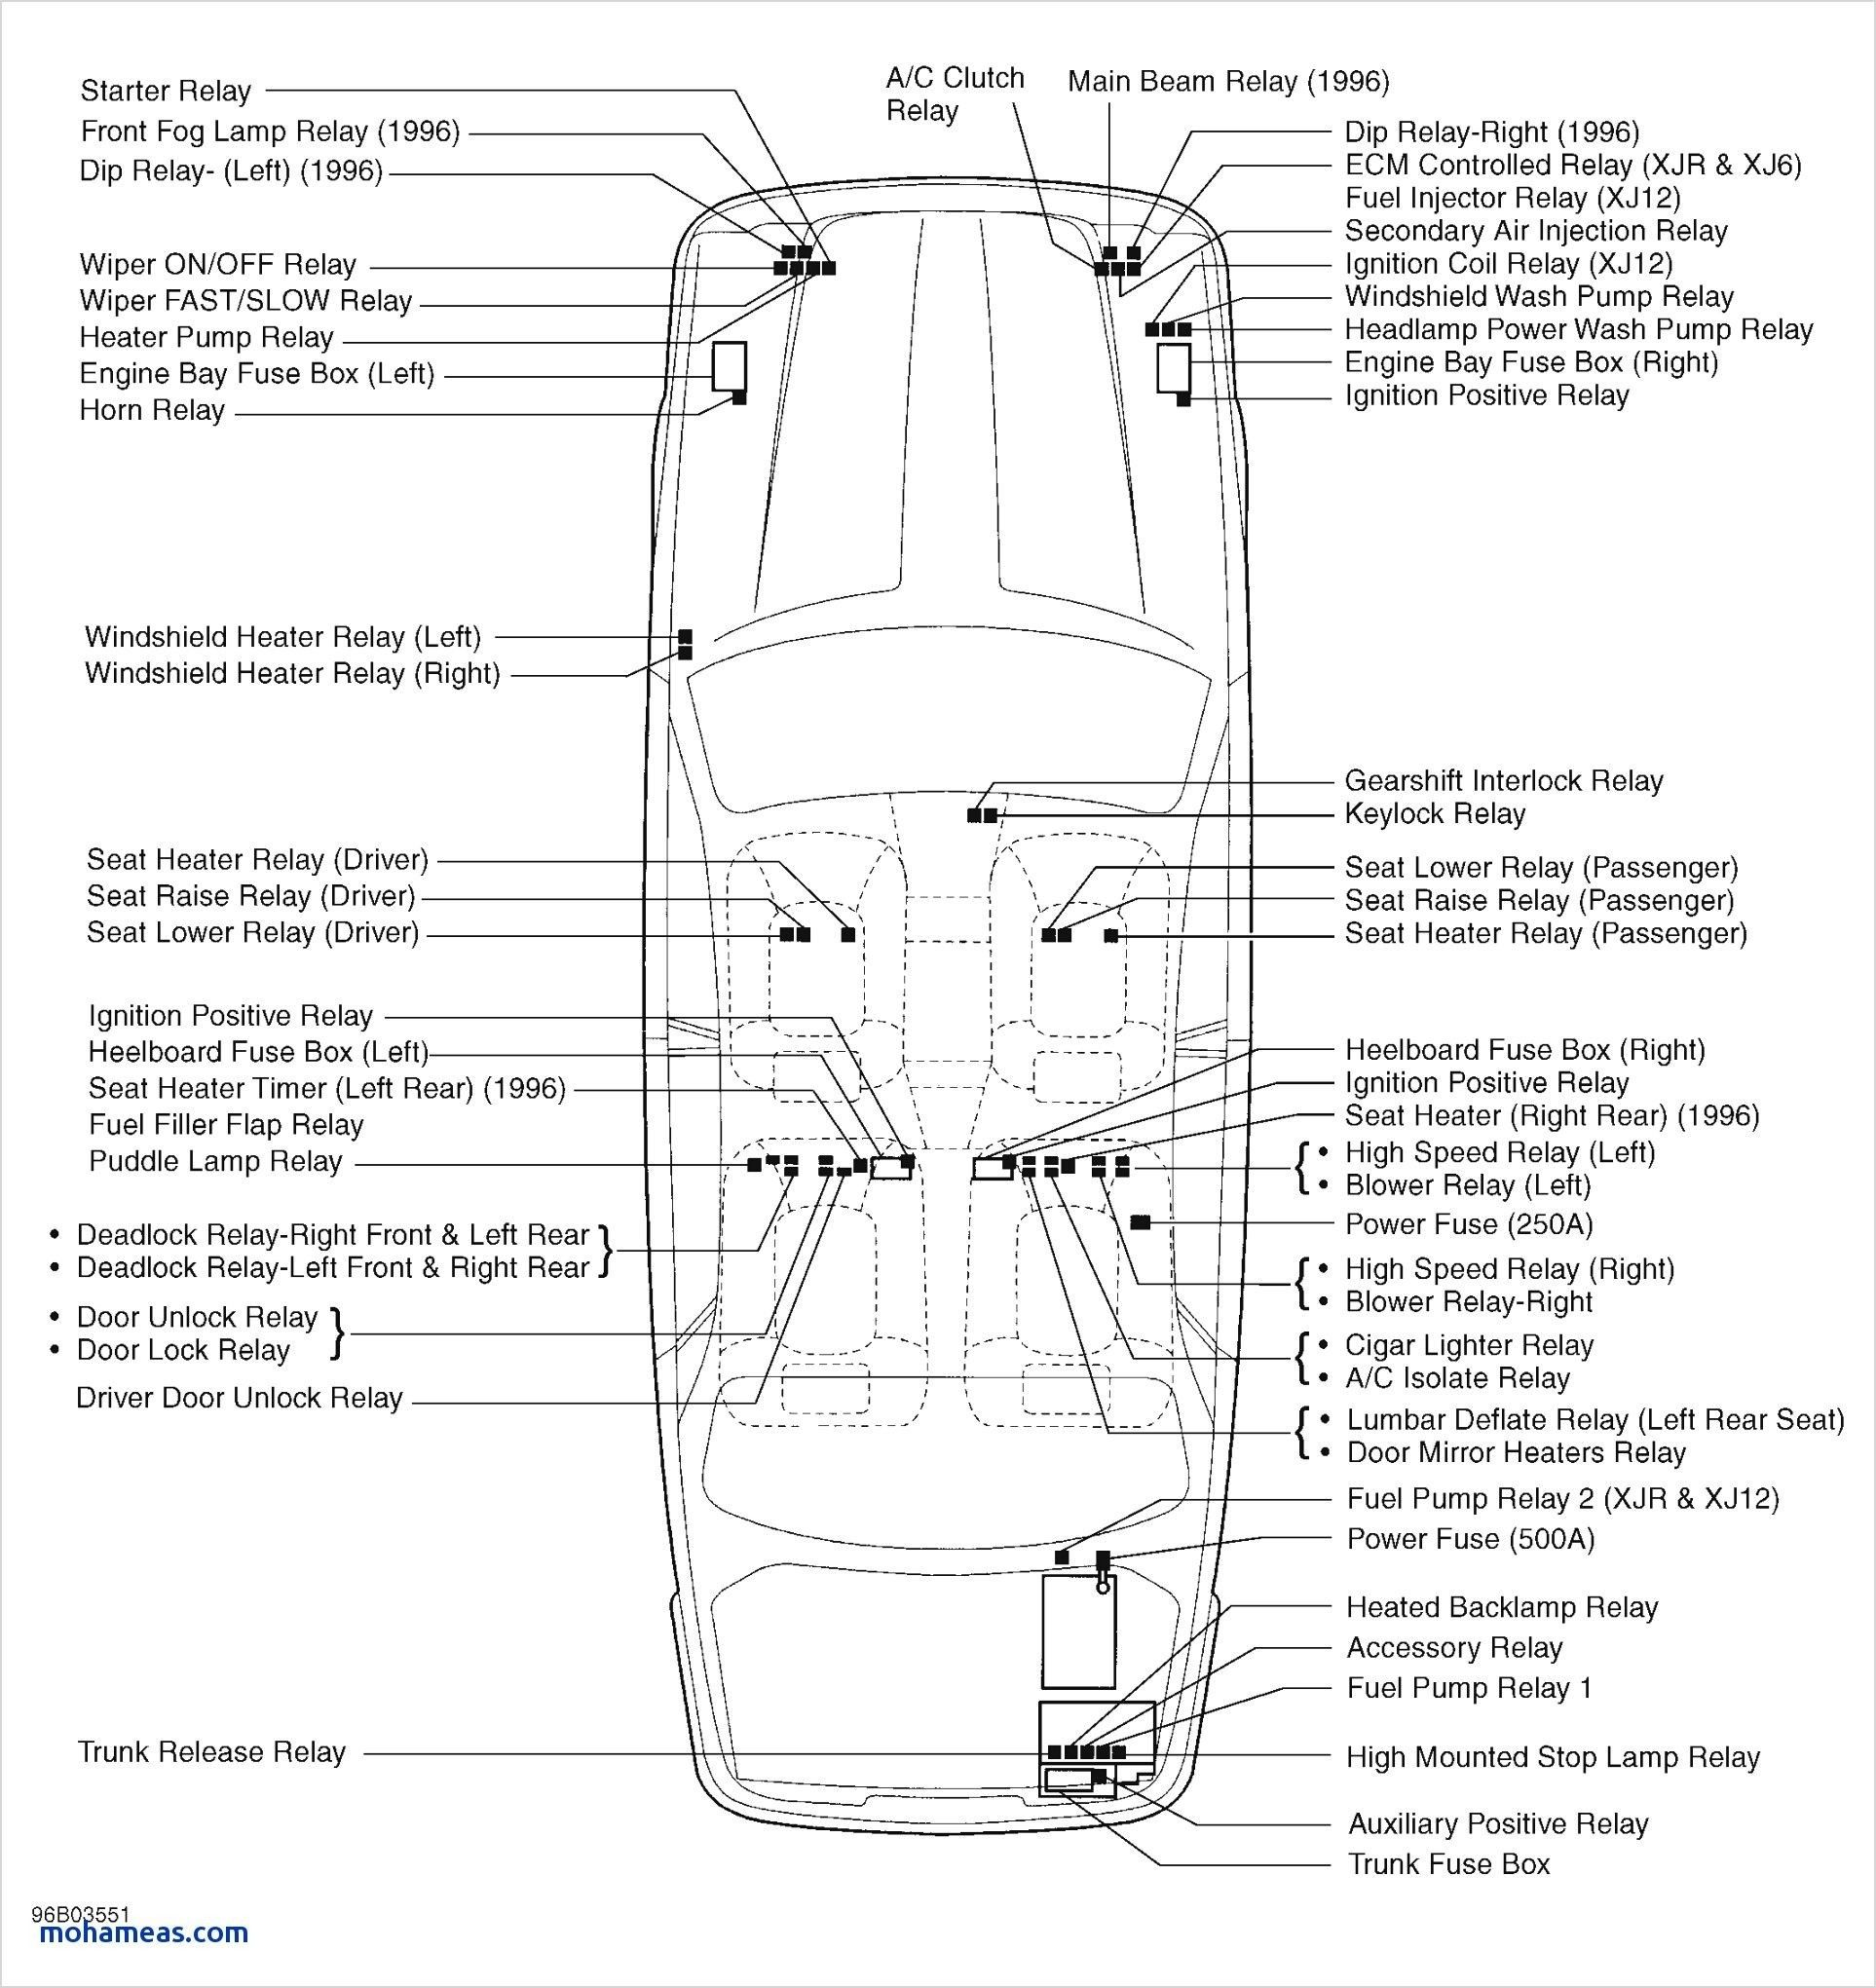 new jeep grand cherokee seat wiring diagram | jeep grand cherokee, new jeep  grand cherokee, jeep grand  pinterest